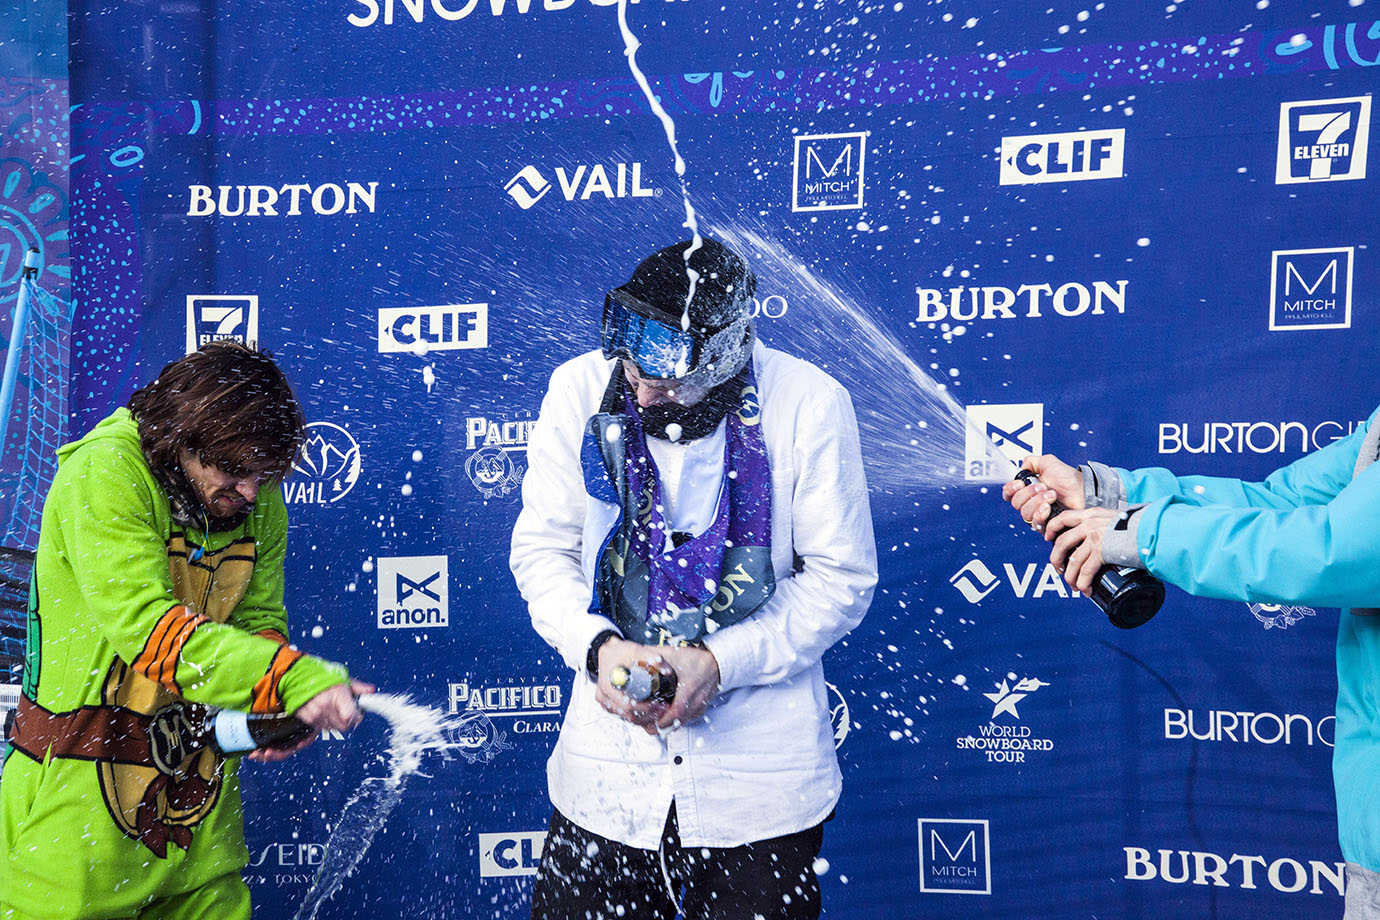 Mack, 18, was given a bottle of apple cider to celebrate with, but no bottle opener. That and his position in the middle of the podium made him an easy target for Toutant and Beauchemin, both of whom are of age.